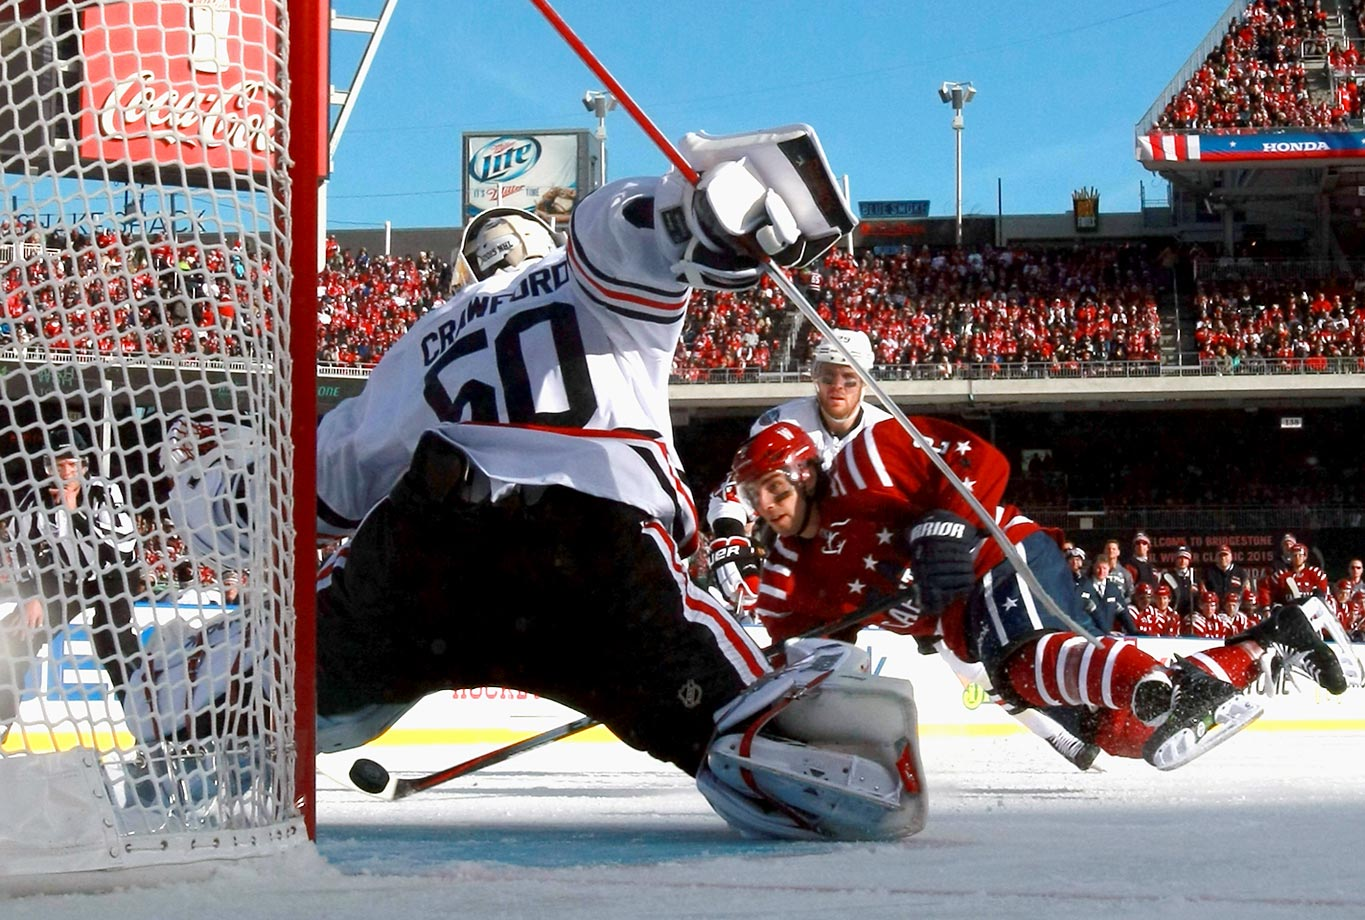 Matt Niskanen of the Washington Capitals follows through on a shot on goal against goaltender Corey Crawford of the Chicago Blackhawks at Nationals Park in Washington, D.C.